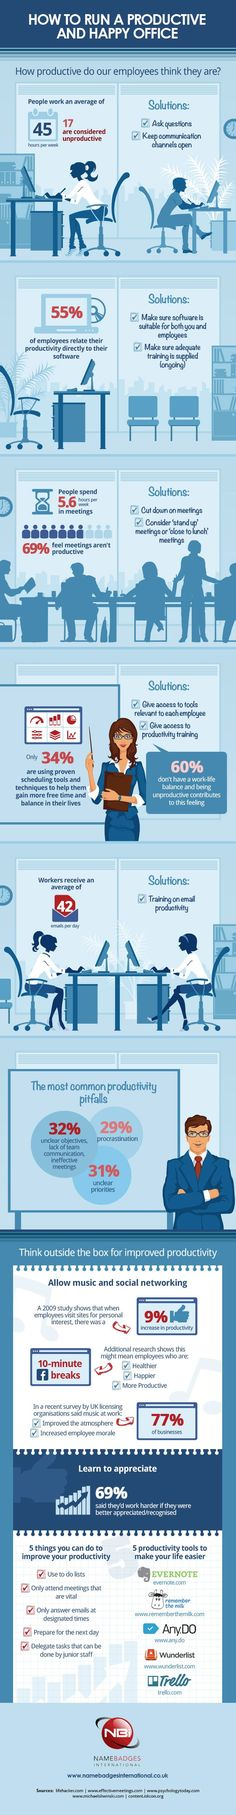 How to Run a Productive Office - #Infographic via #BornToBeSocial